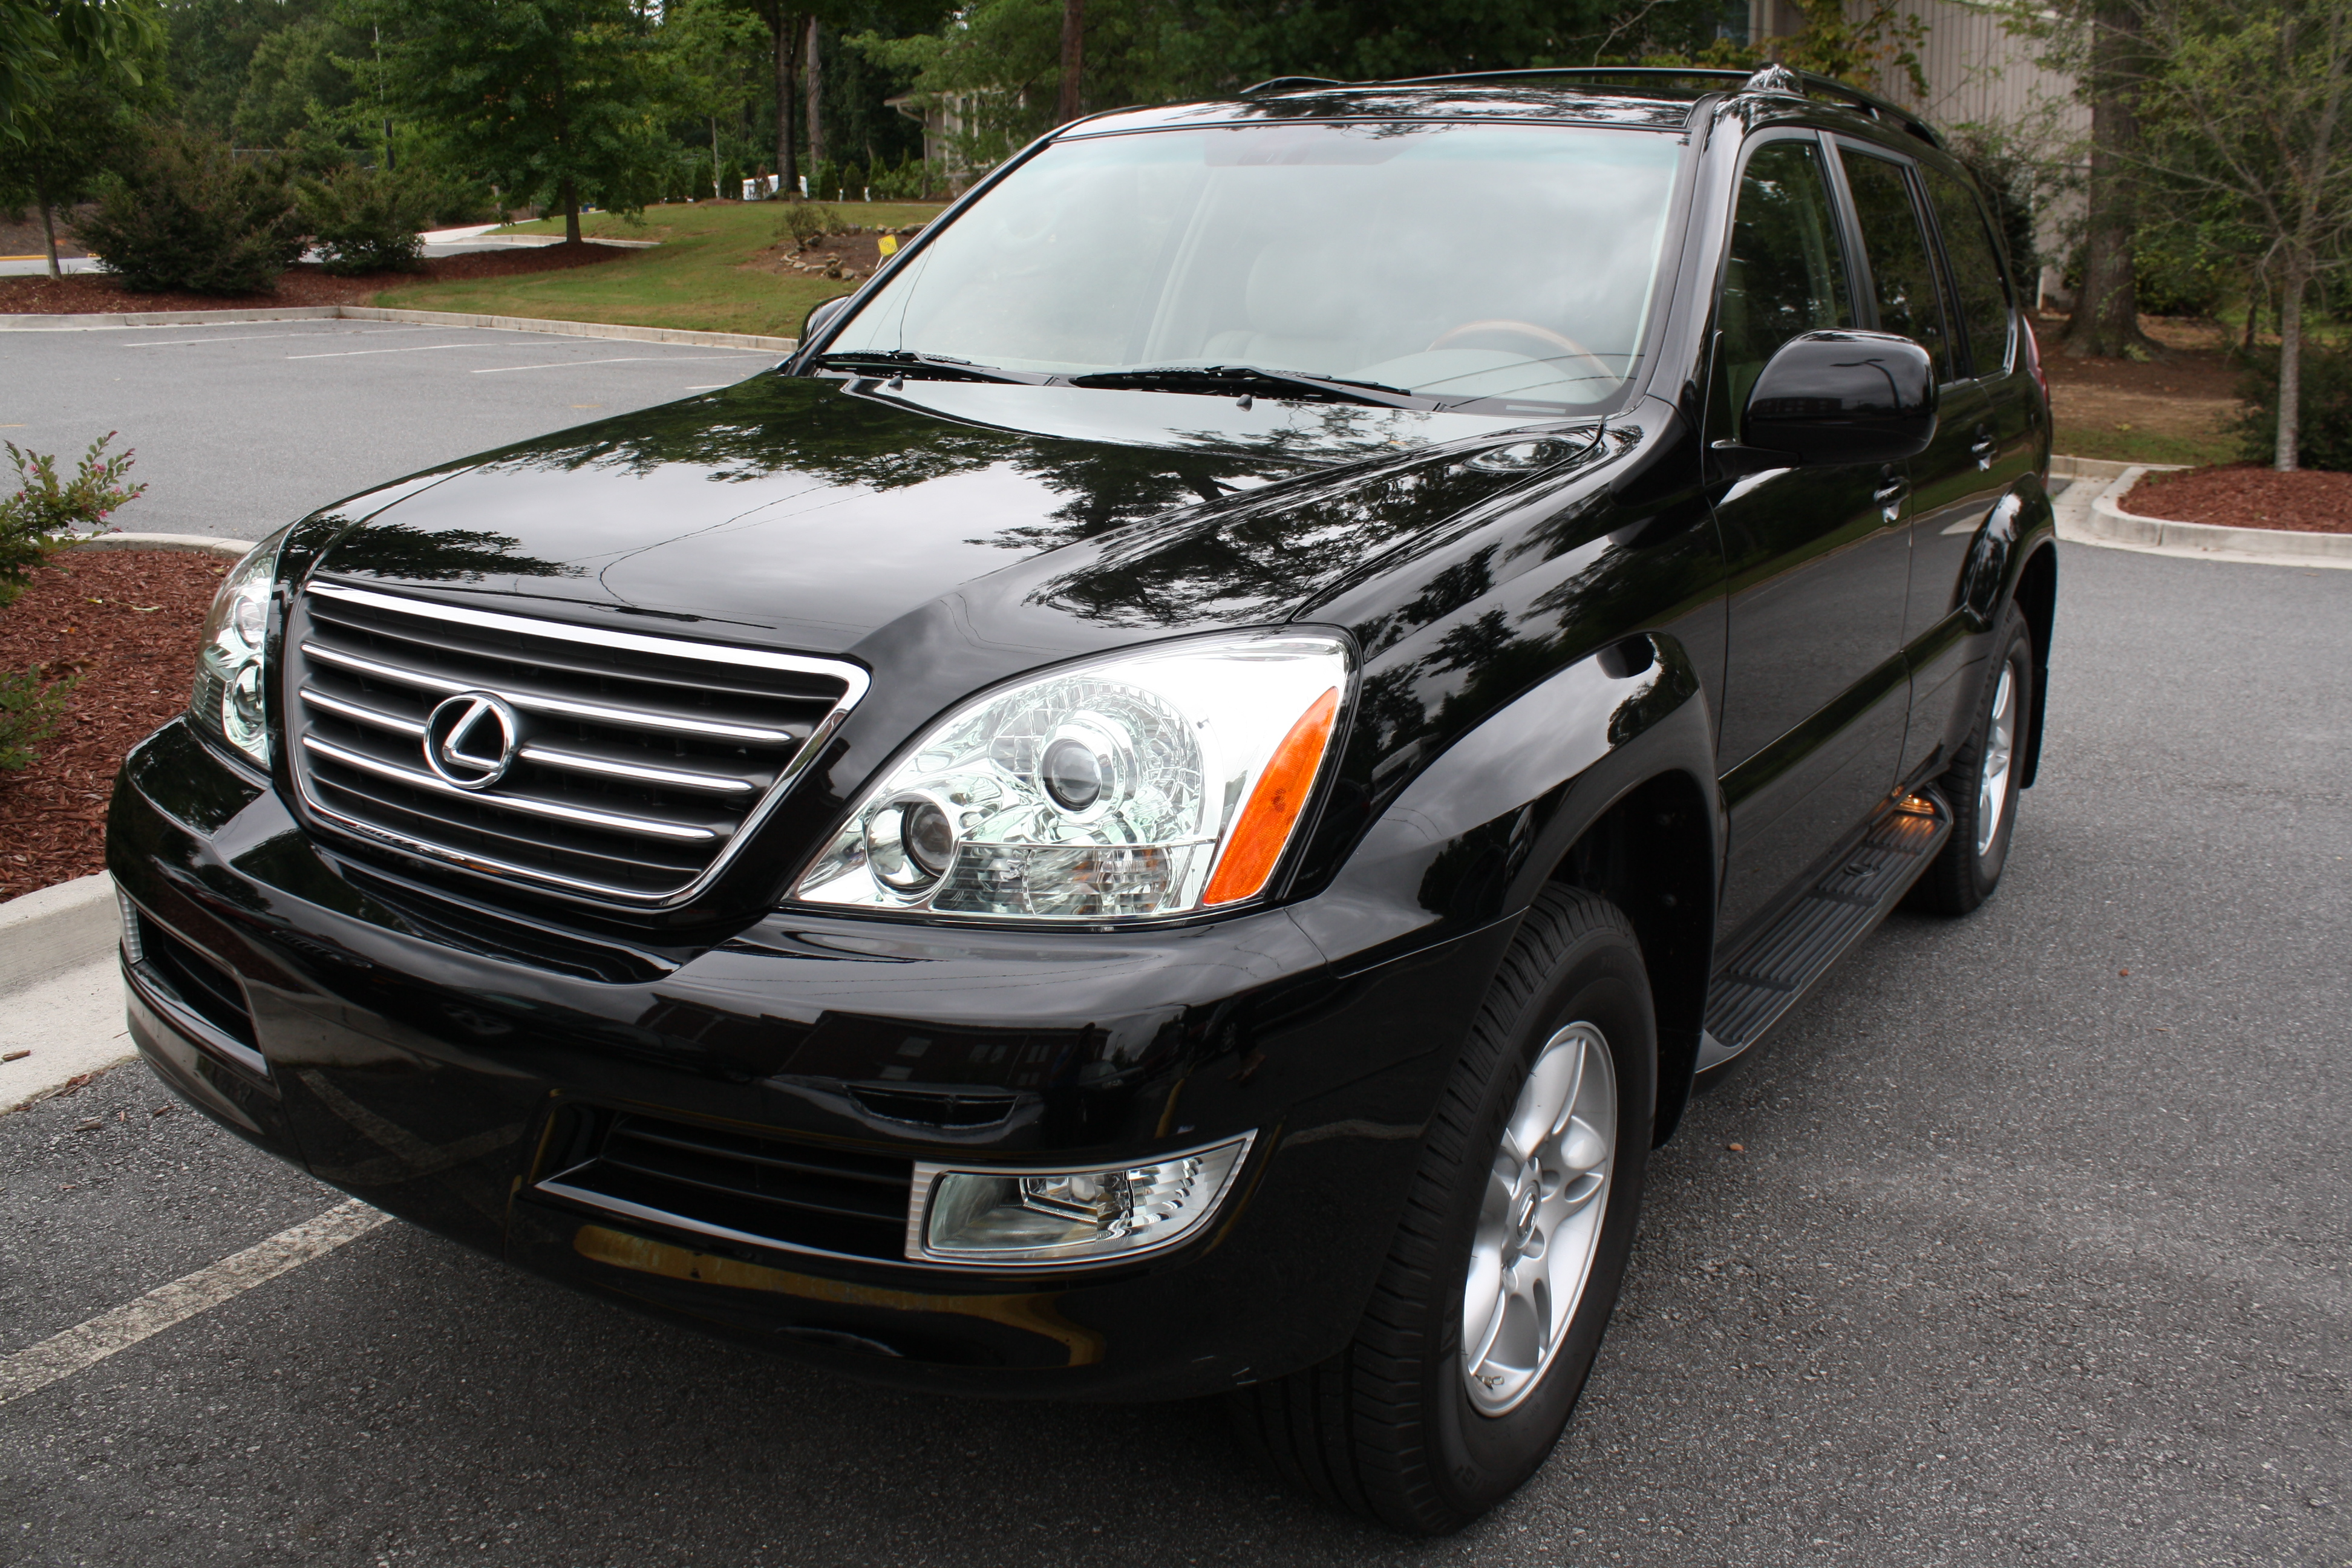 dealerships at with fortune its experiments lexus a gx haggling no